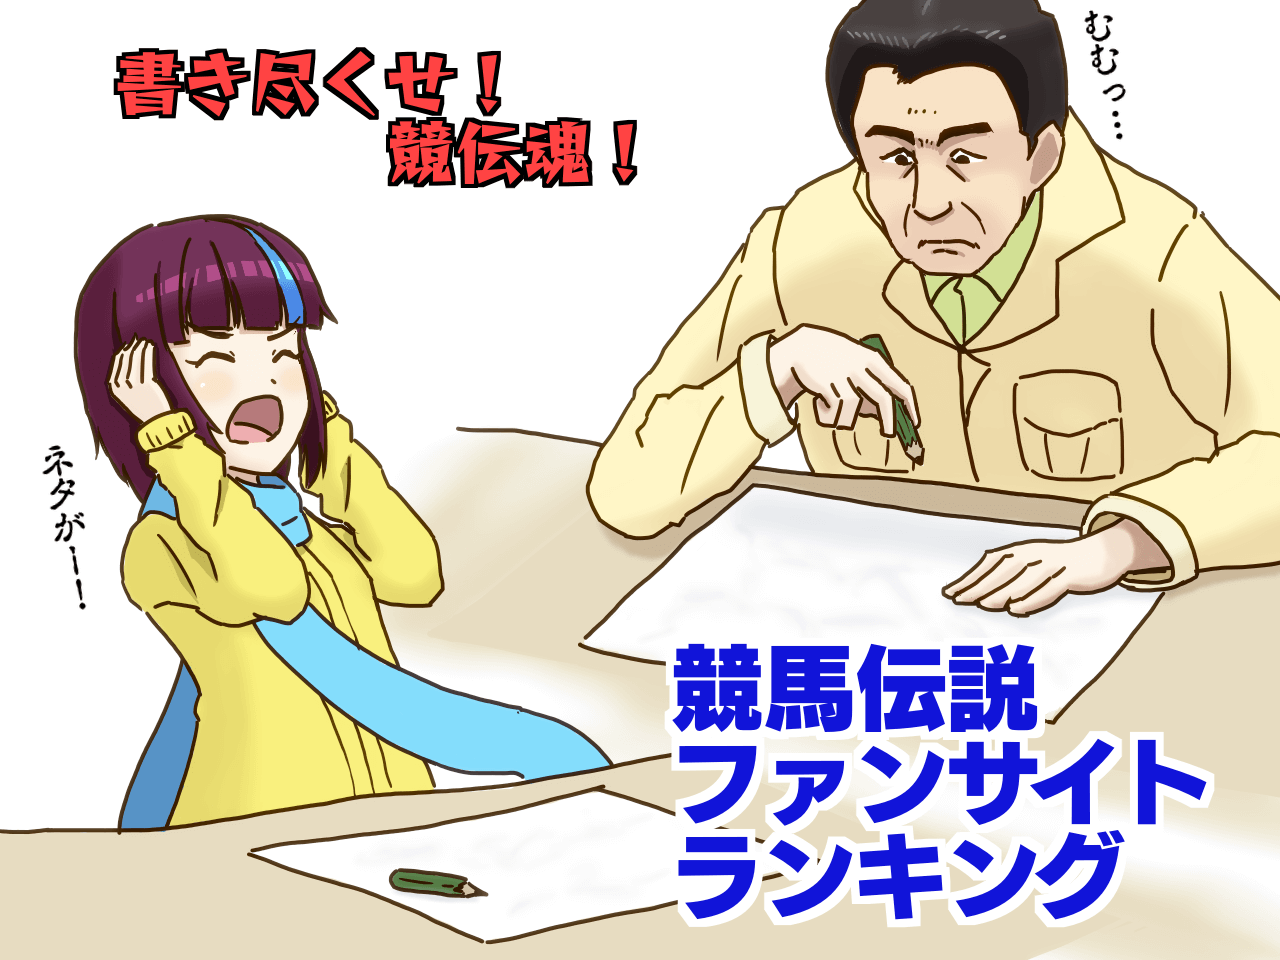 20161006052250c96.png